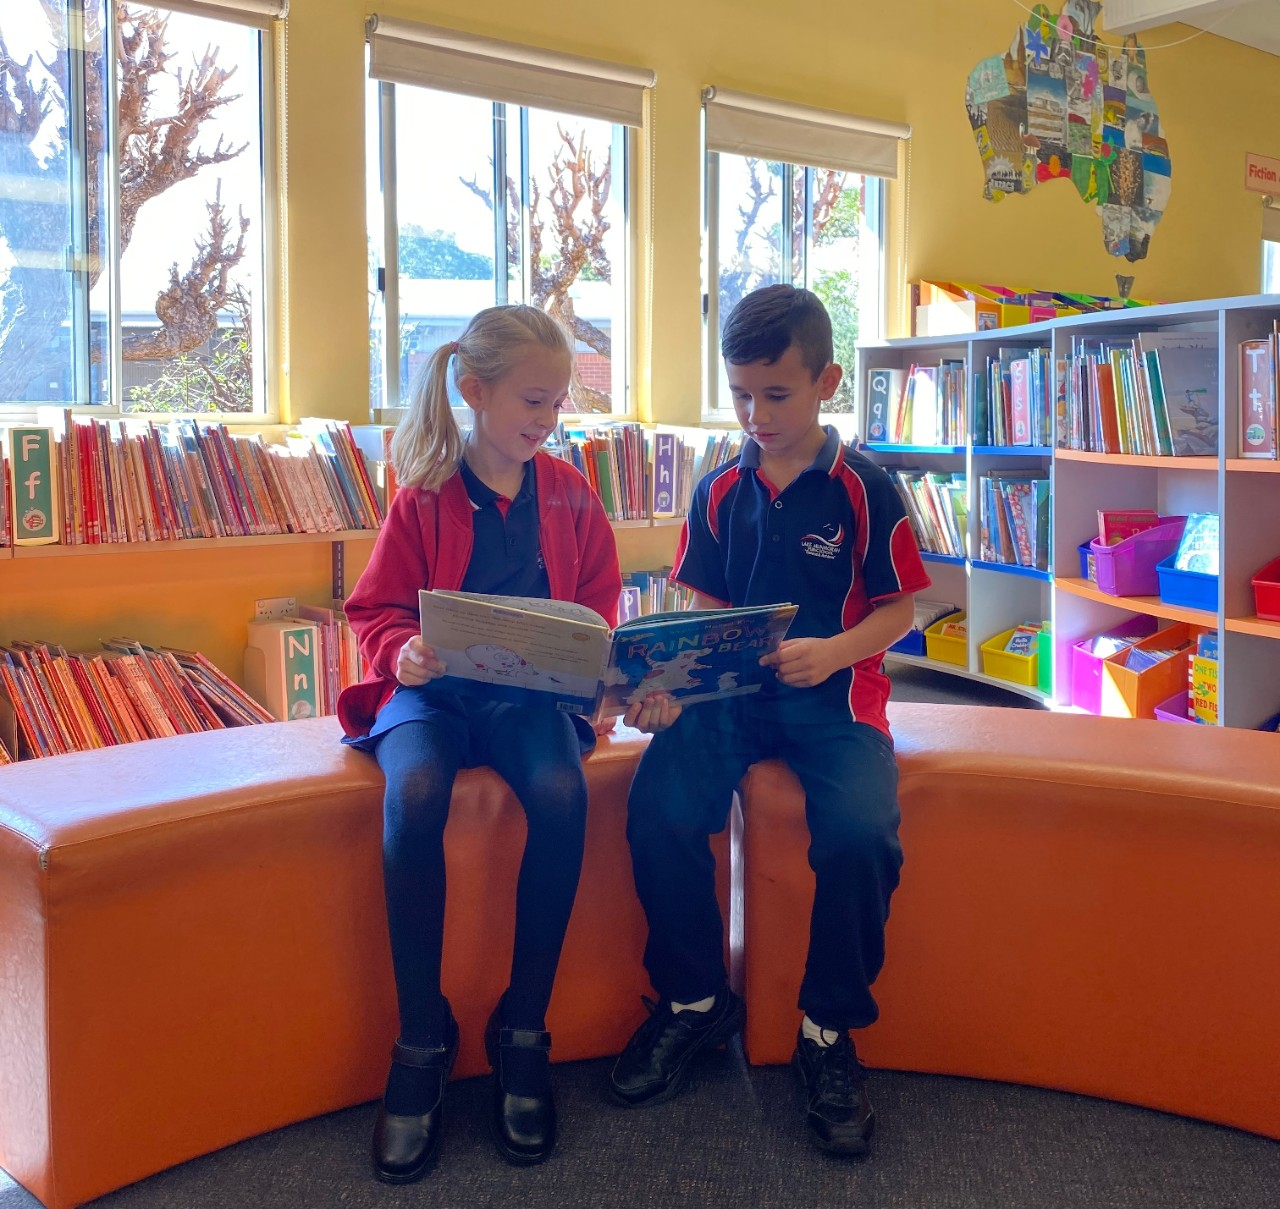 two students reading a book together in the library